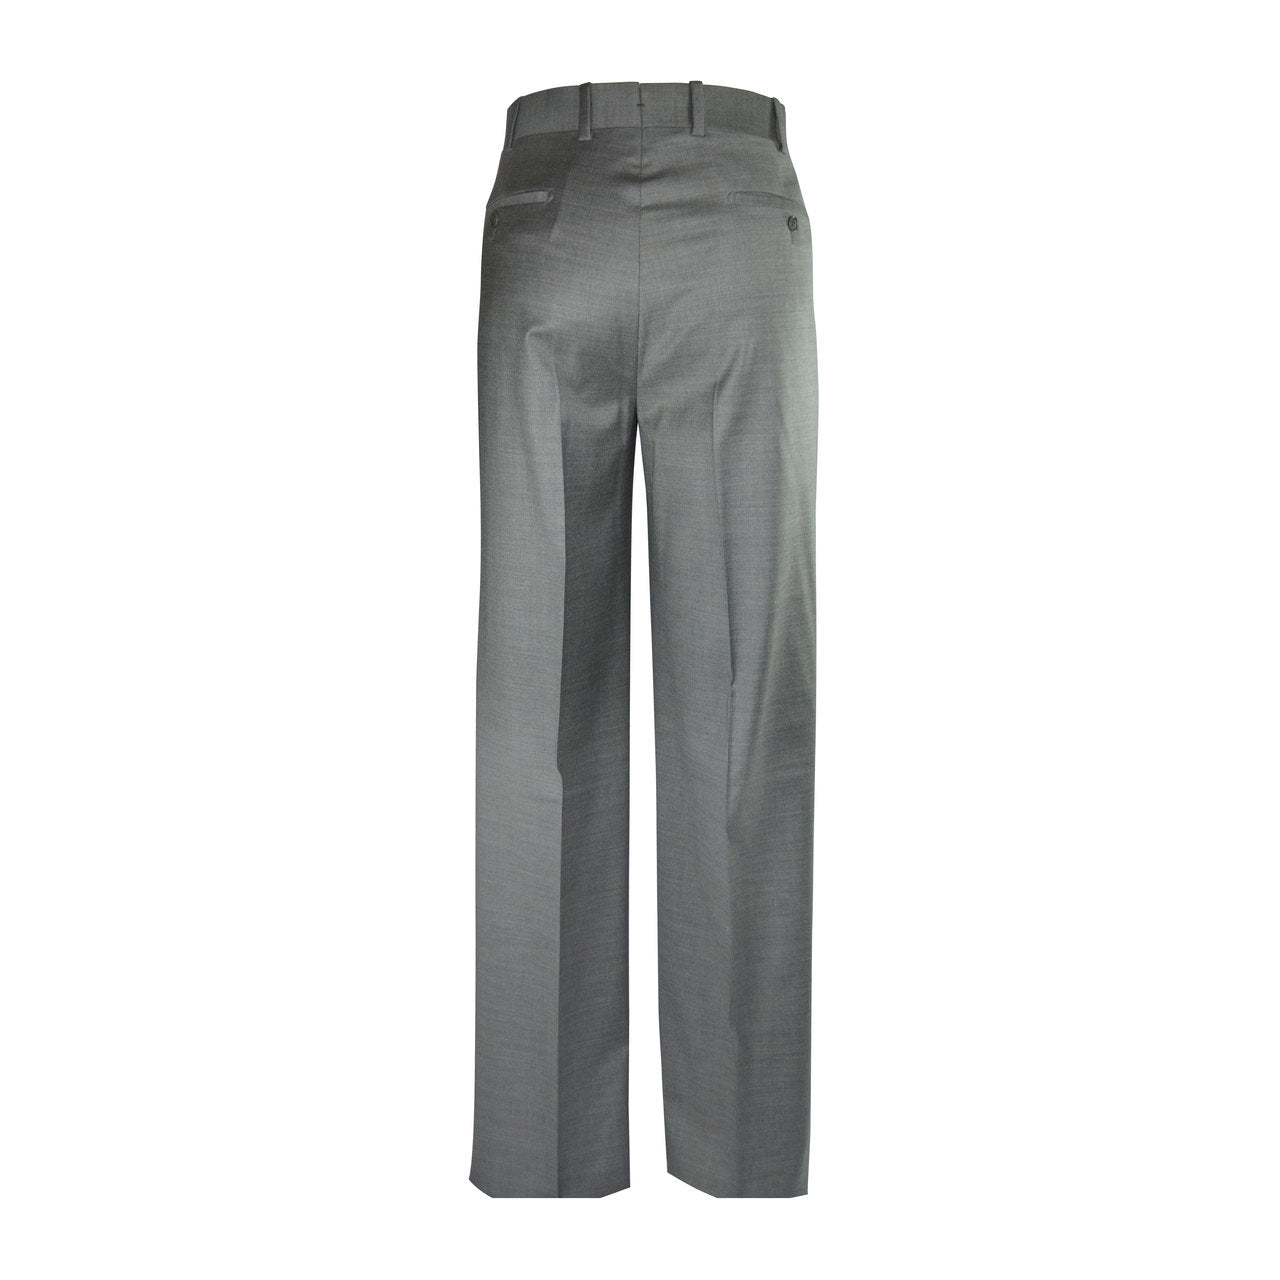 Newport Pleated Front Trouser - Ash